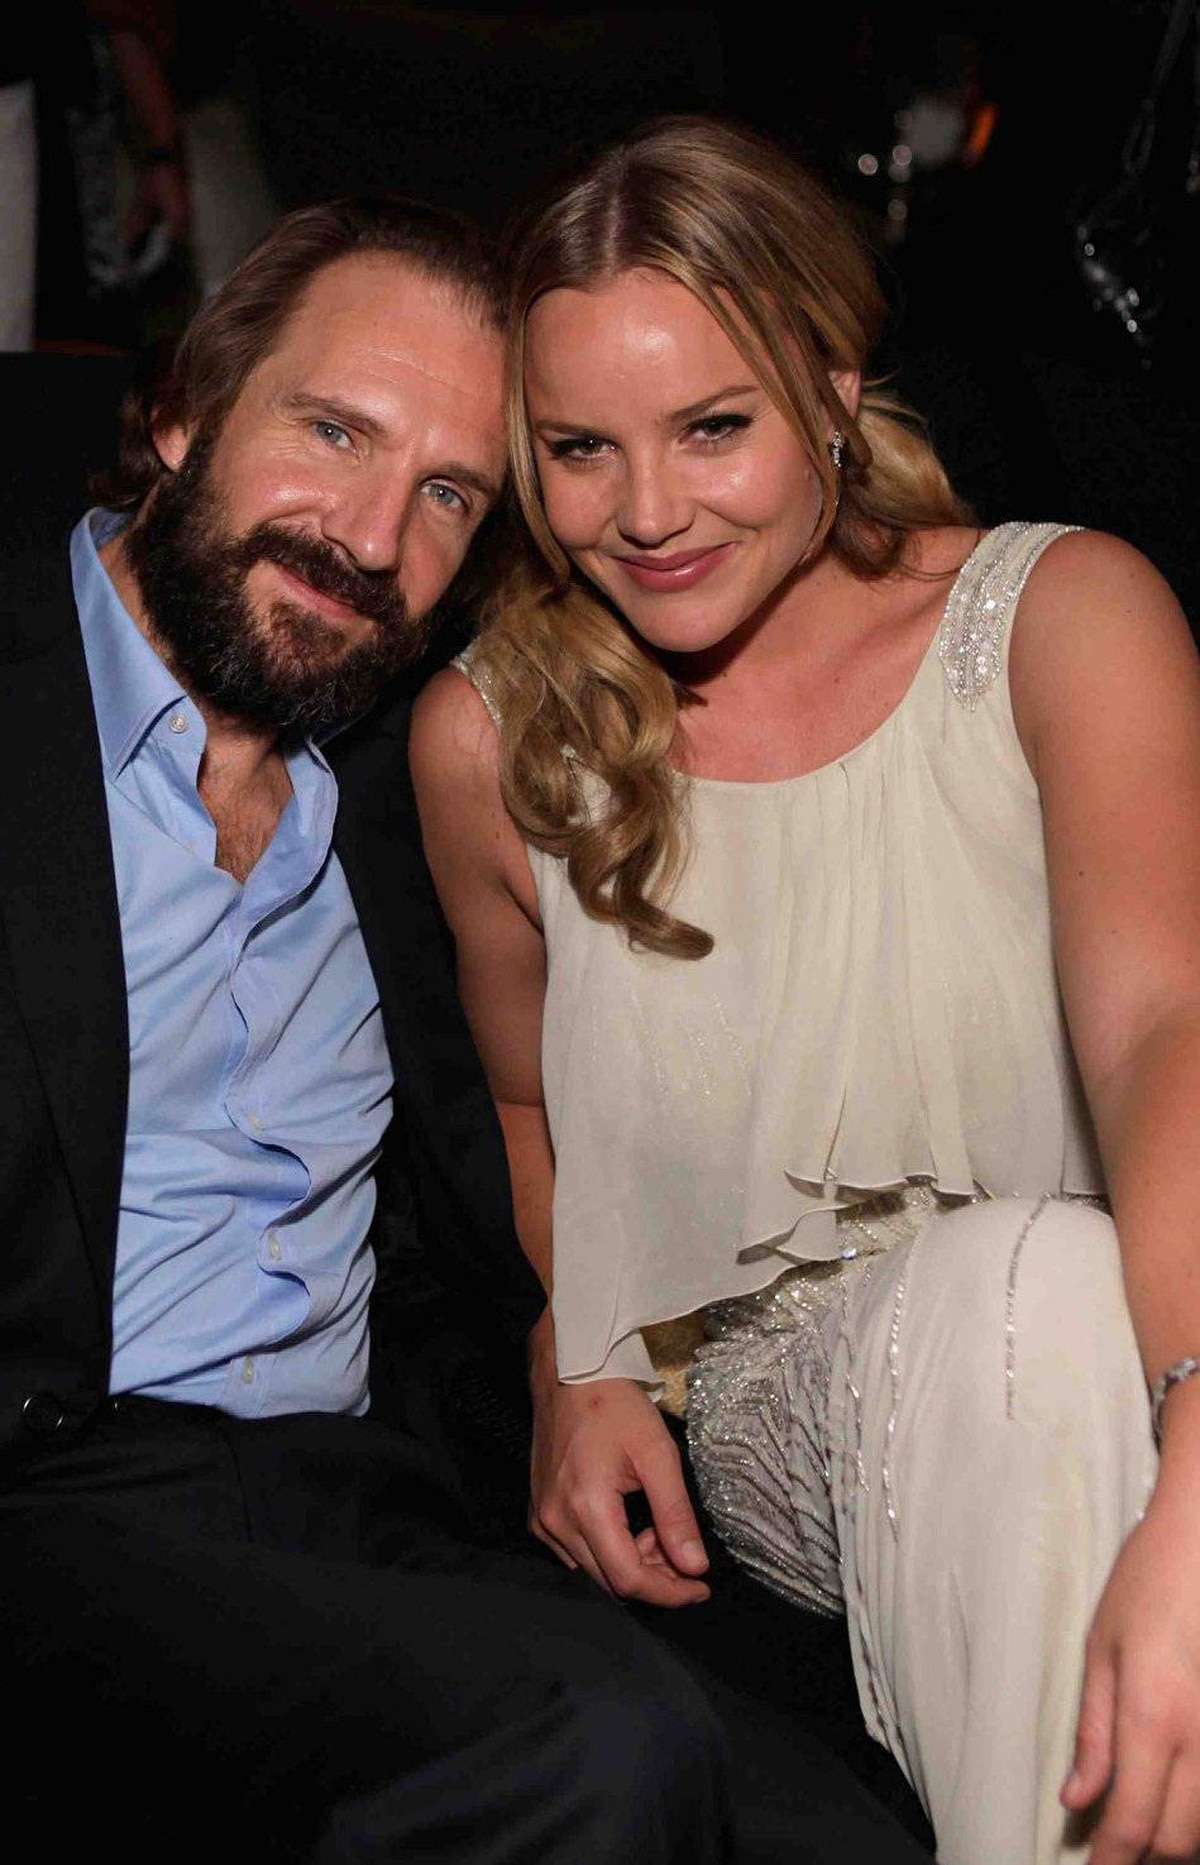 """TORONTO, ON - SEPTEMBER 12: Actor Ralph Fiennes and Actress Abbie Cornish attend the """"Weinstein Party Including Butter Cast"""" hosted by GREY GOOSE Vodka at Soho House Pop Up Club during the 2011 Toronto International Film Festival on September 12, 2011 in Toronto, Canada."""